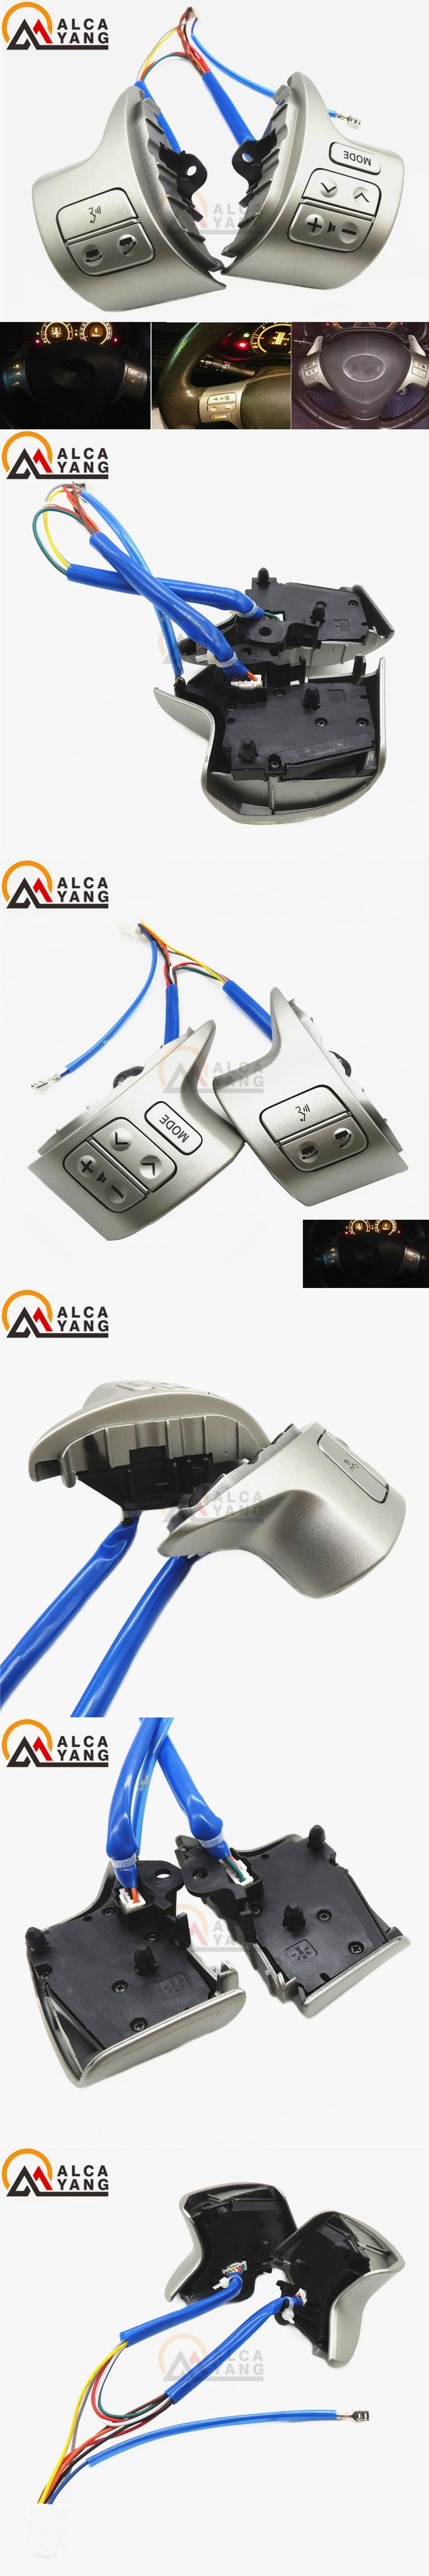 Bluetooth Steering Wheel Audio Control Switch For Toyota Corolla ZRE15 2007 ~2010